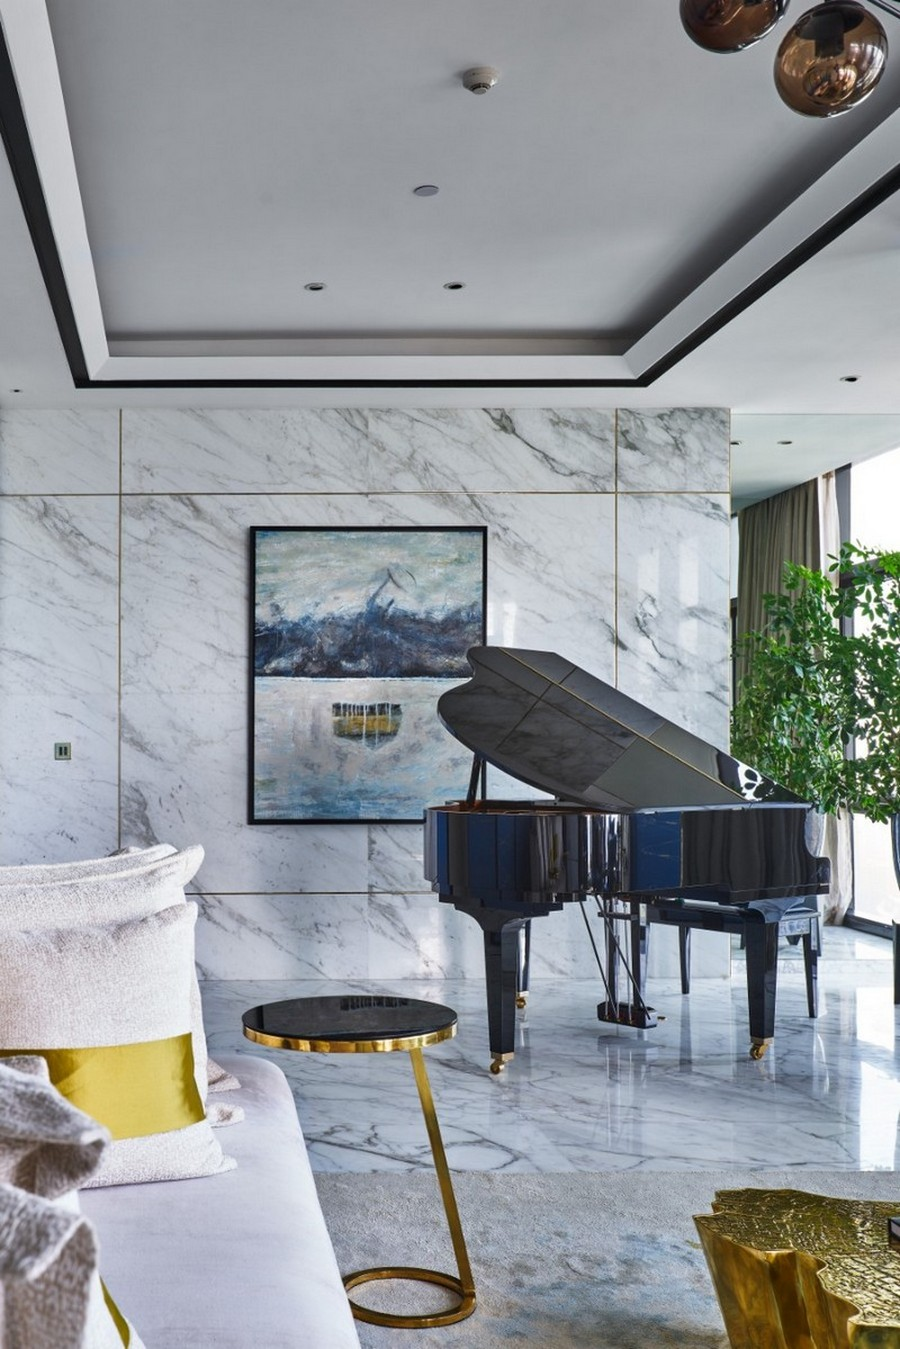 Best Interior Designers: See Who's In This Year's Top 100 (Part I) best interior designers Best Interior Designers: See Who's In This Year's Top 100 (Part I) Best Interior Designers See Whos In This Years Top 100 Part I 32